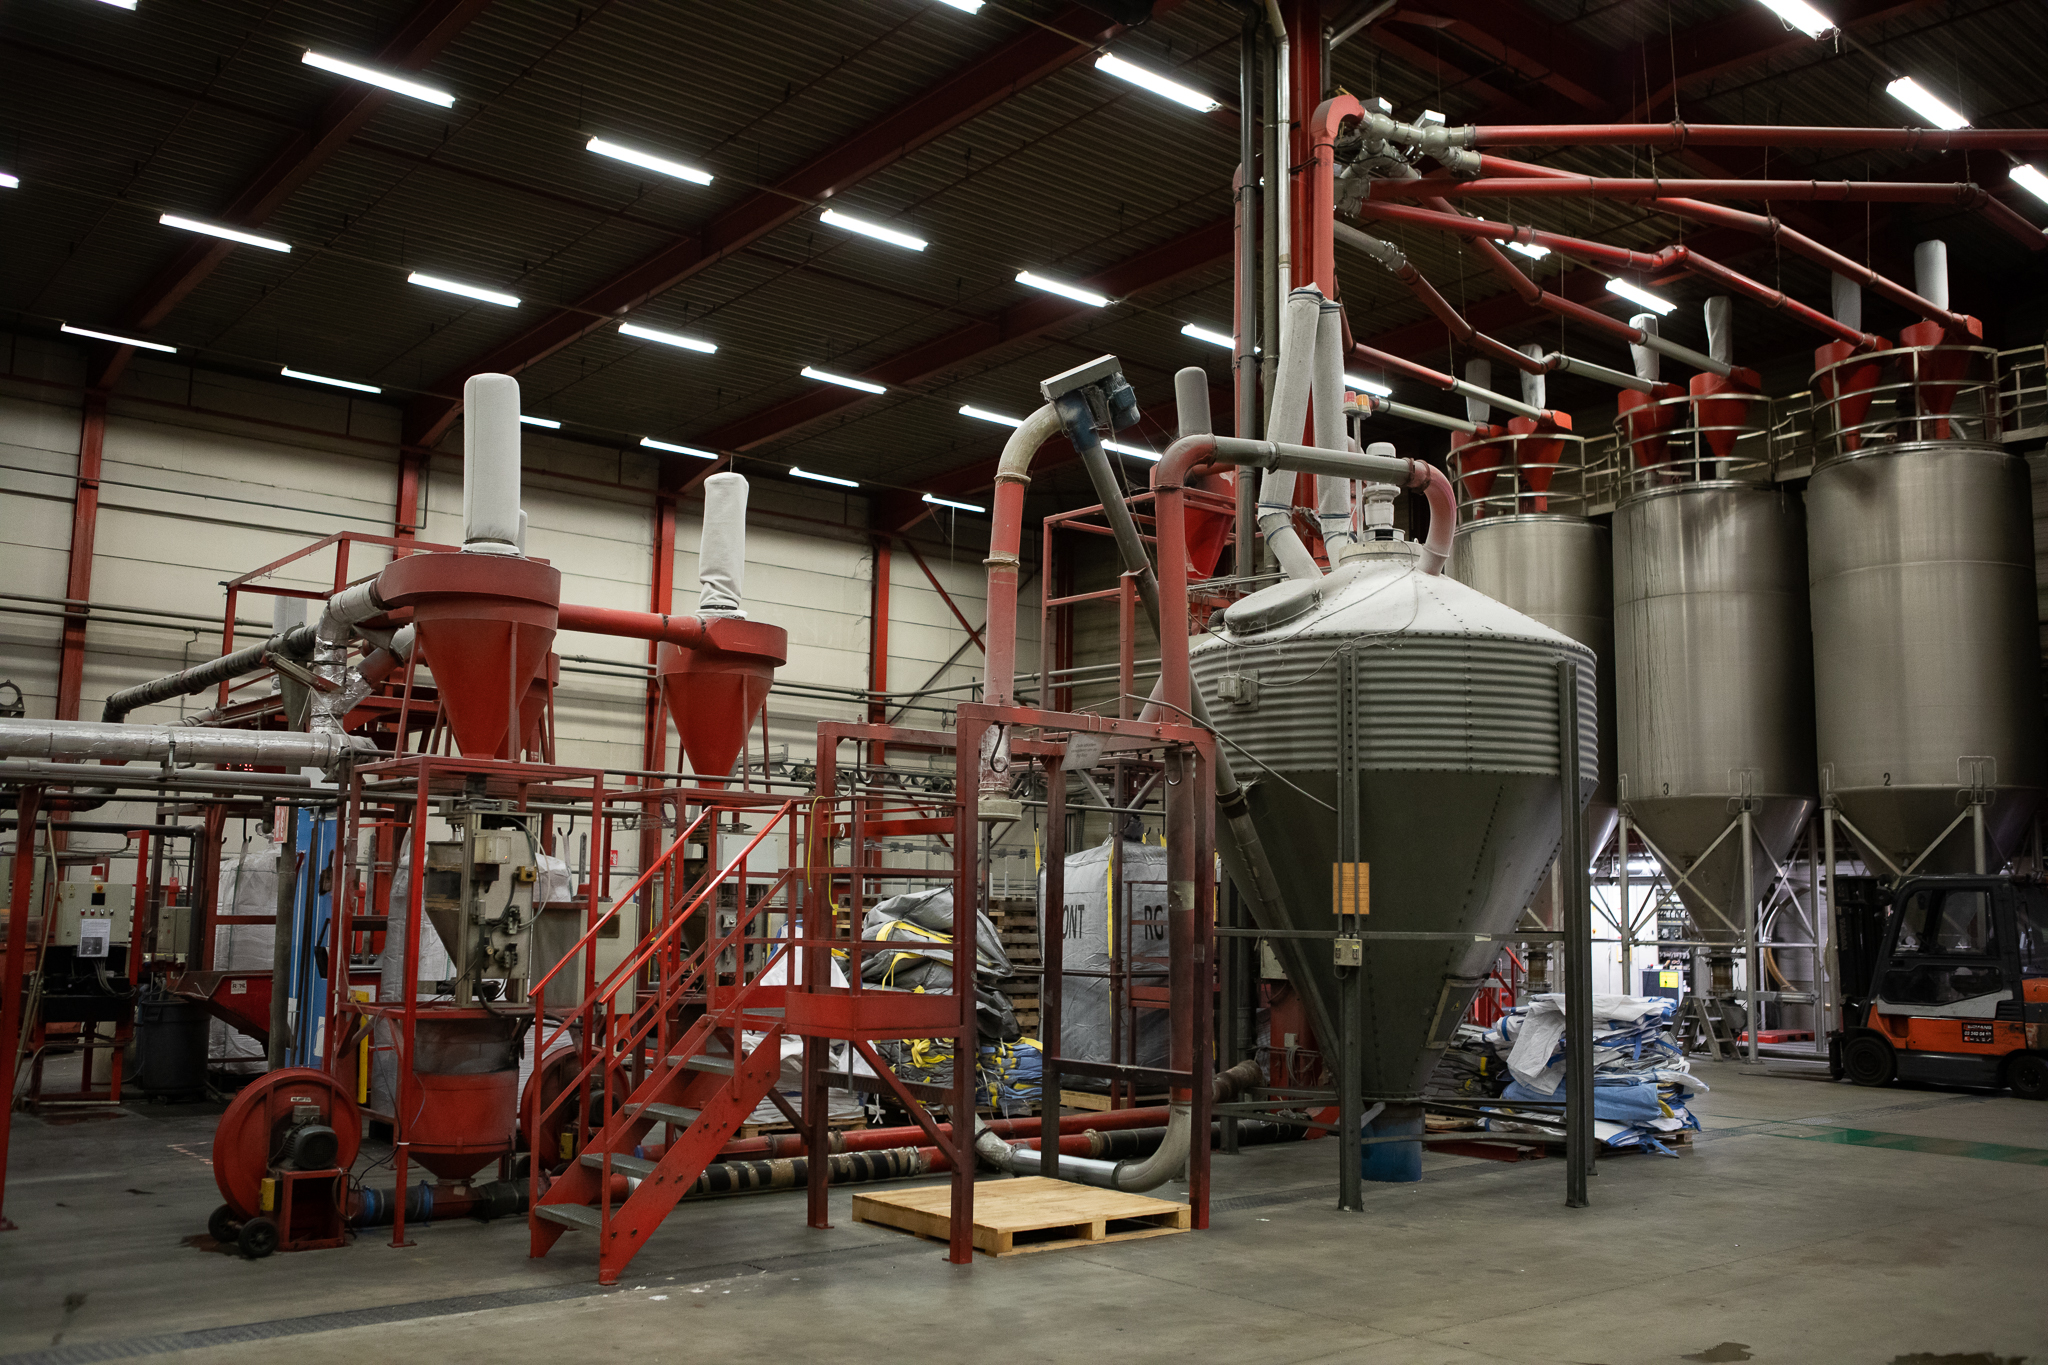 Recycling facility at the RKW plant in Hoogstraten, Belgium